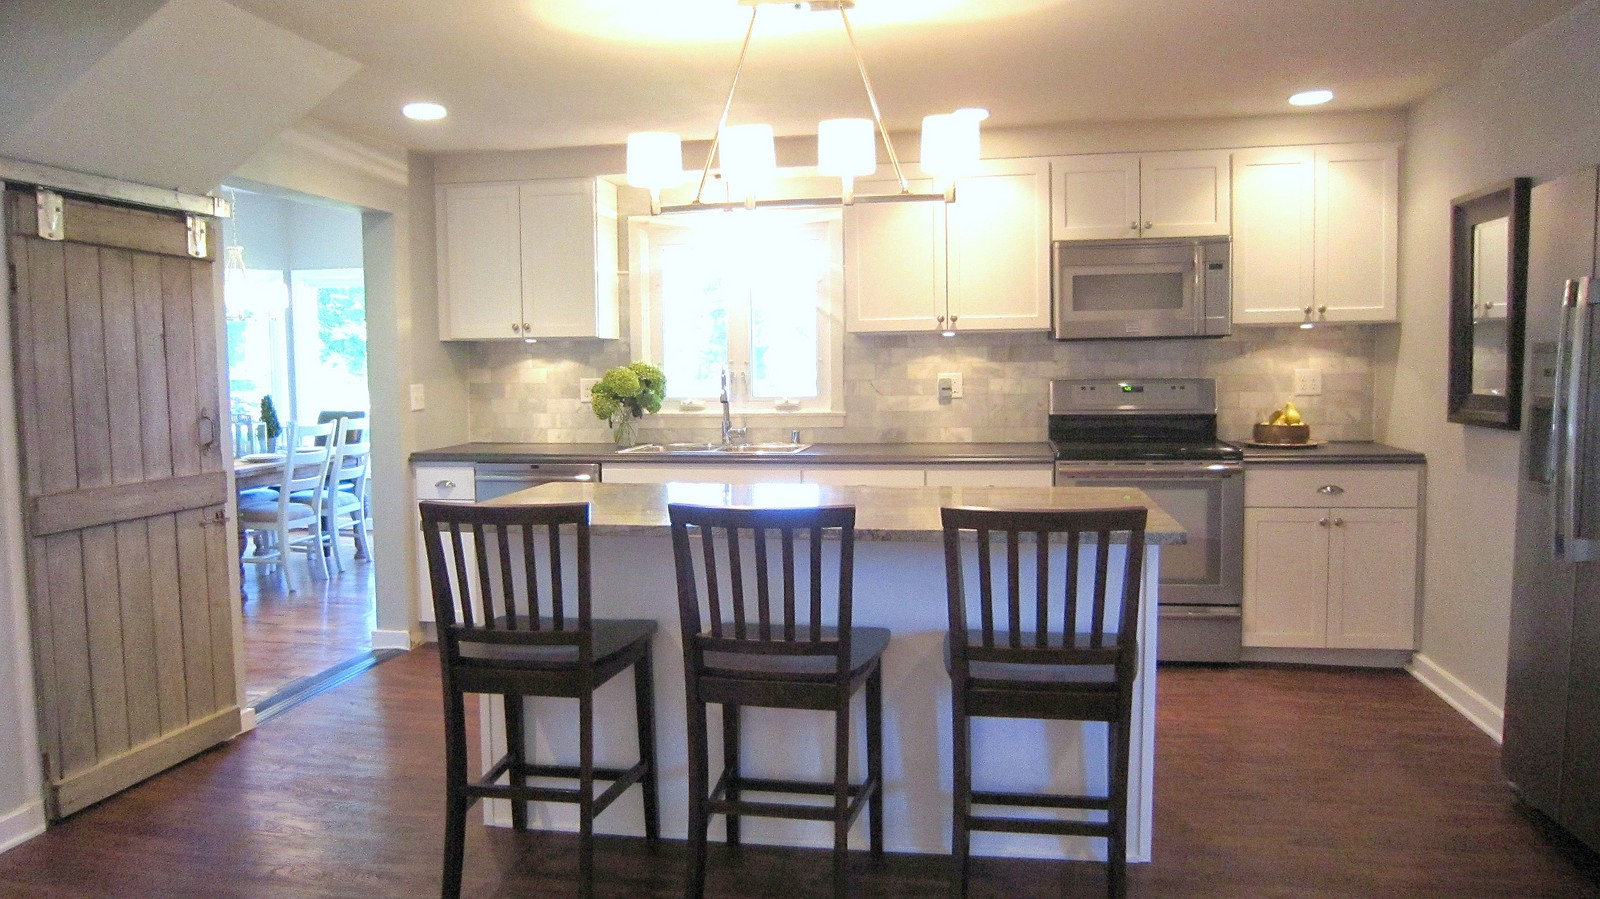 Charming BEFORE U0026 AFTER: Affordable Farmhouse Kitchen Renovation   Gray And White    Granite And Laminate